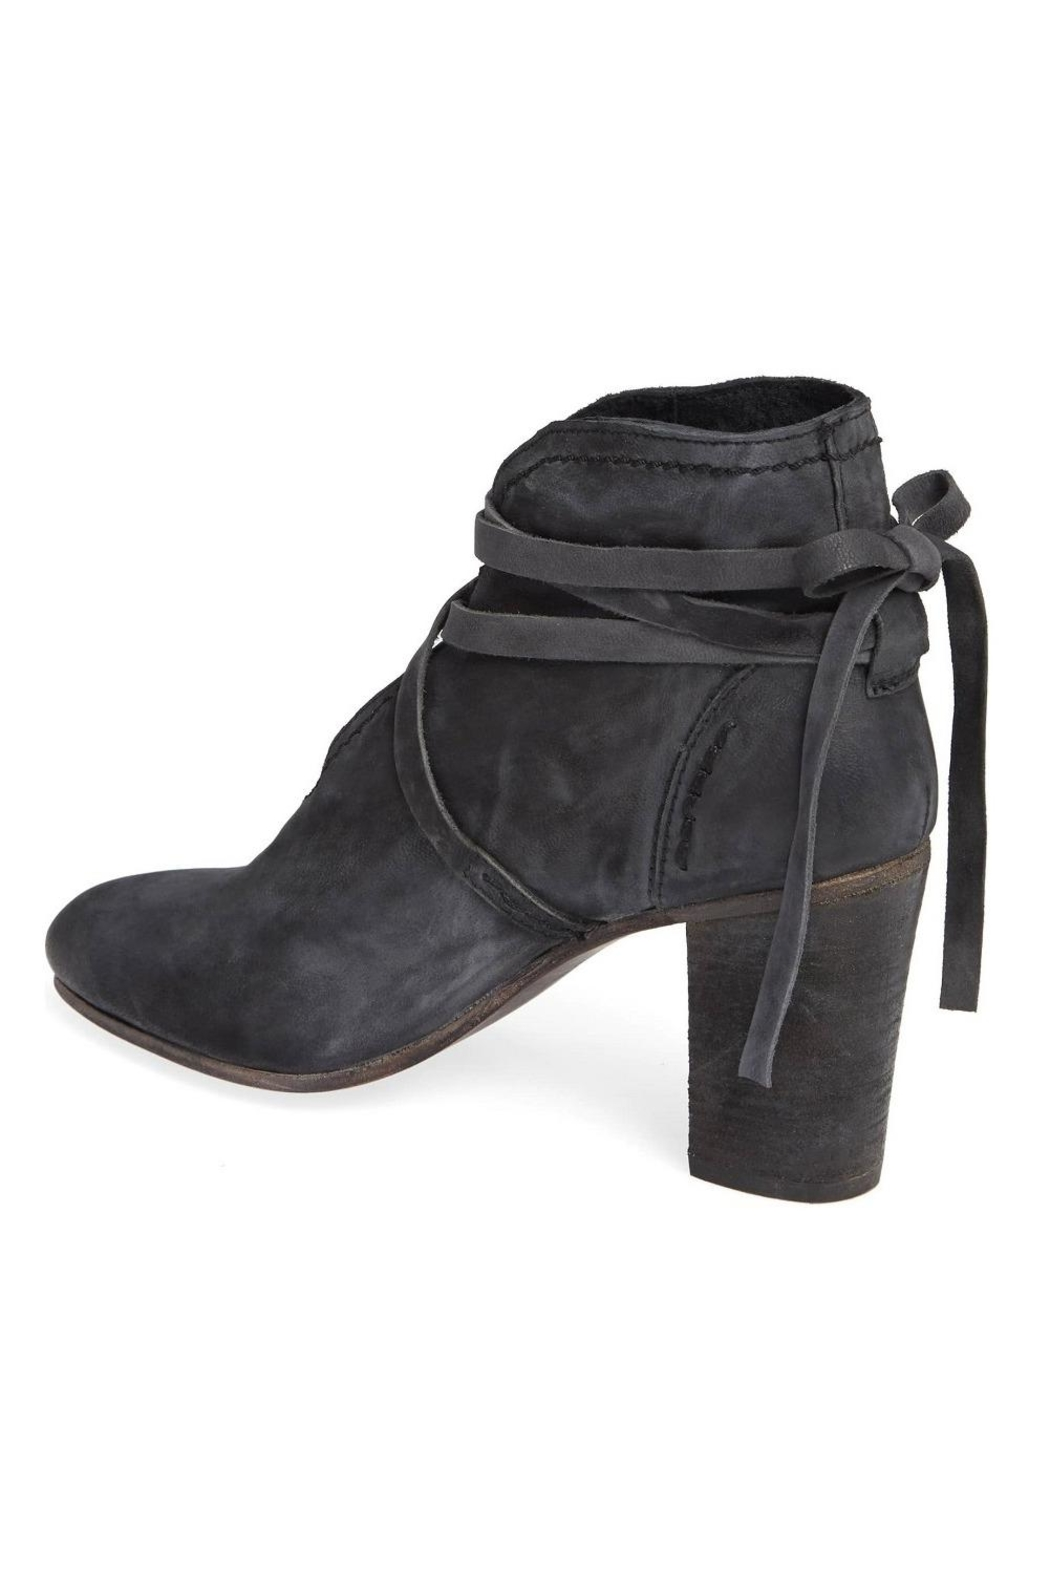 Free People Ankle Tie Bootie - Front Full Image